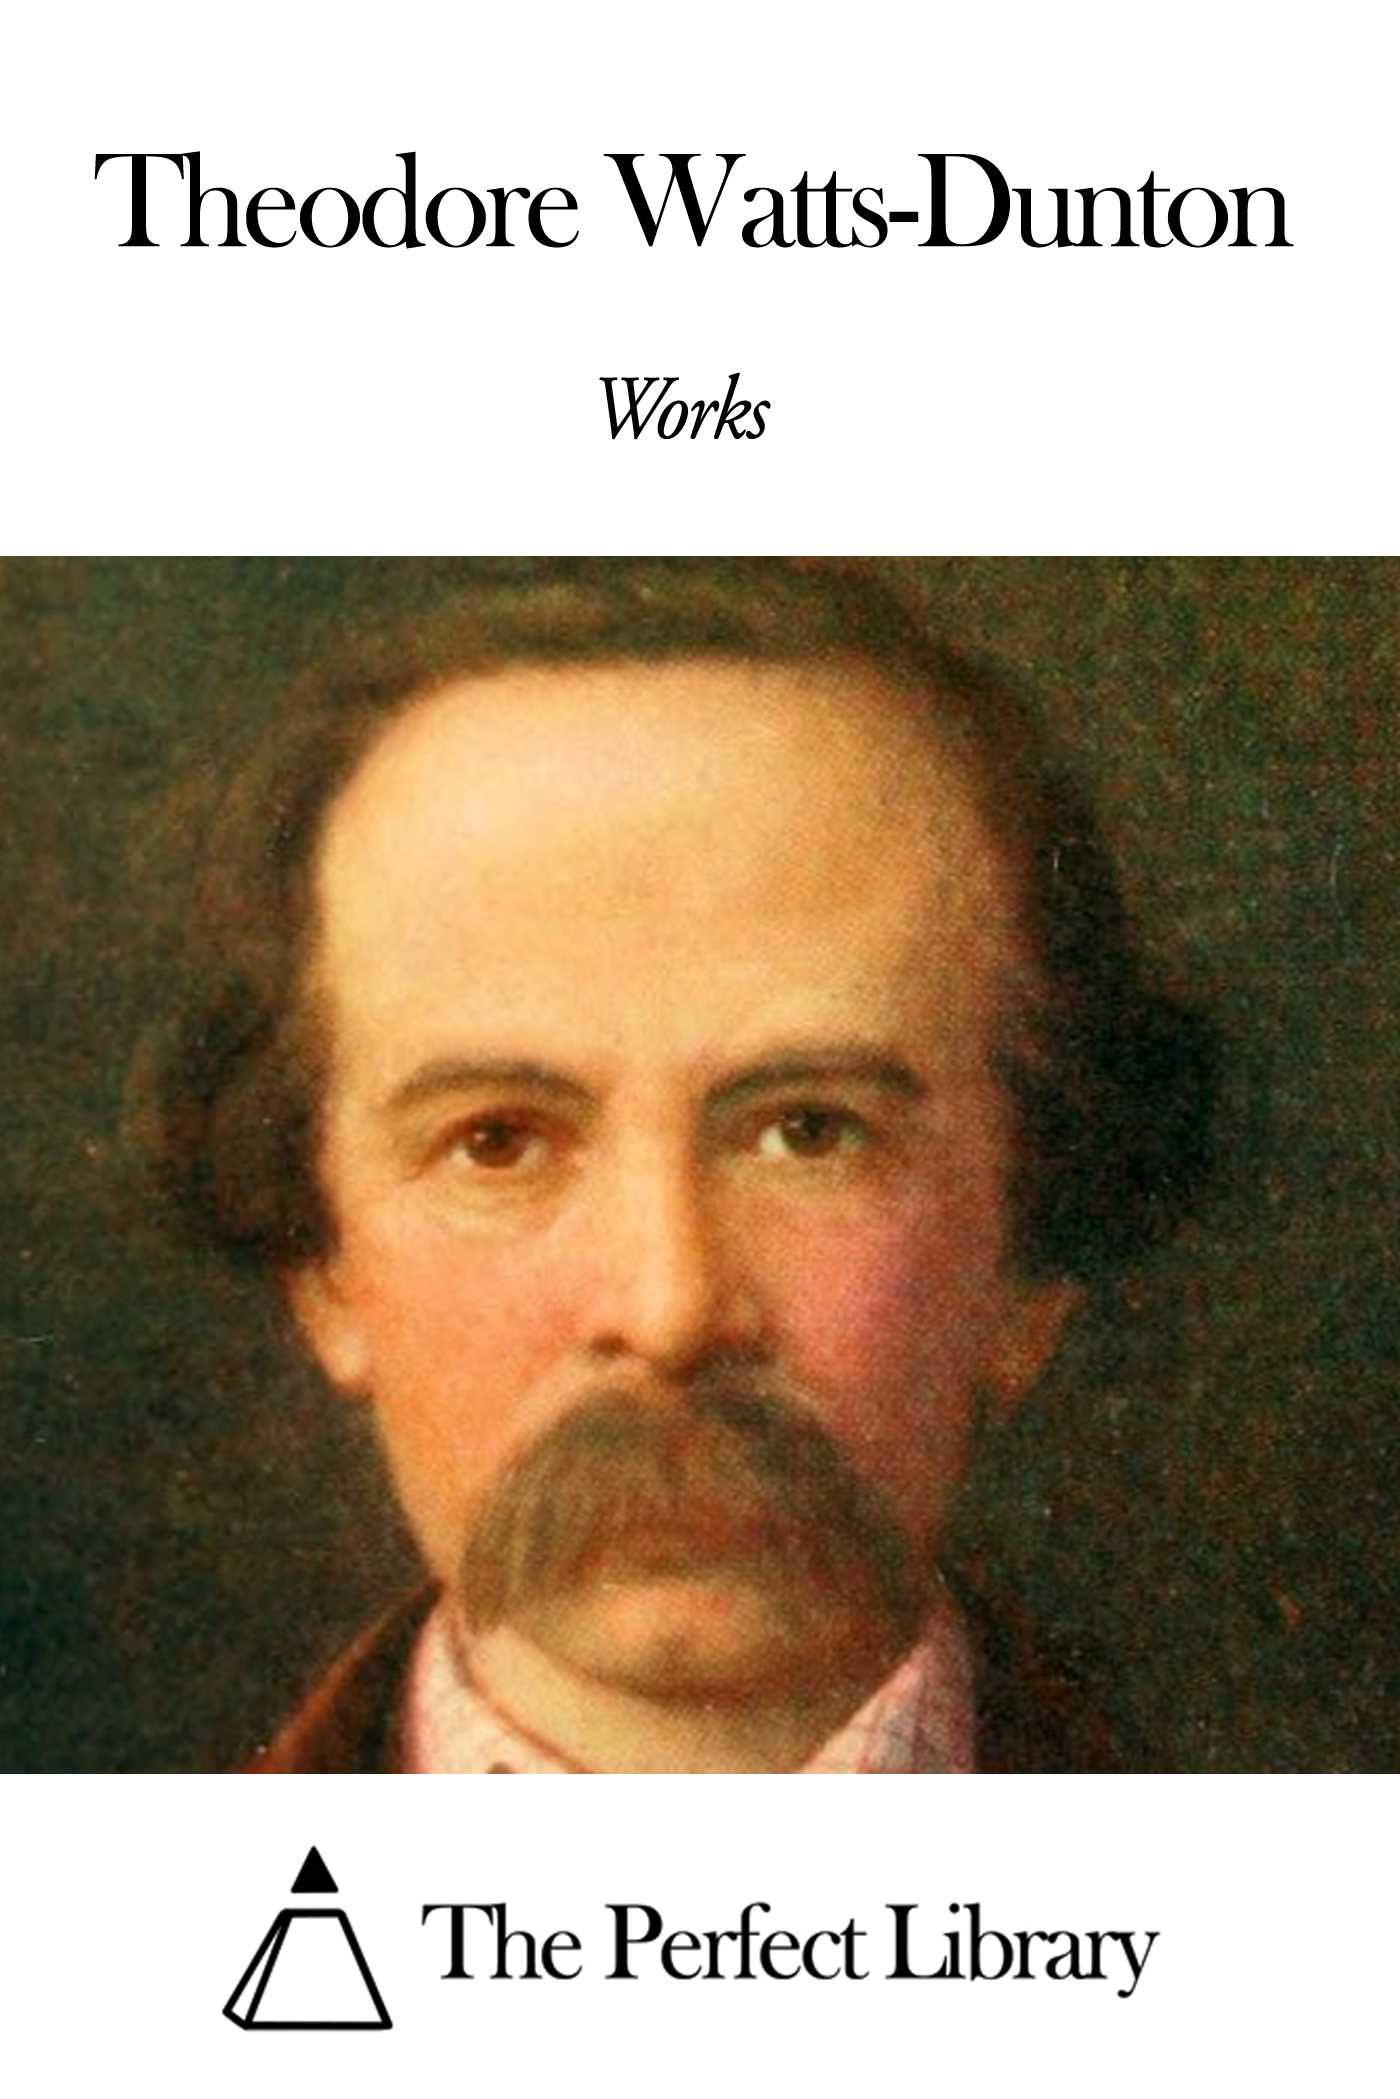 Works of Theodore Watts-Dunton